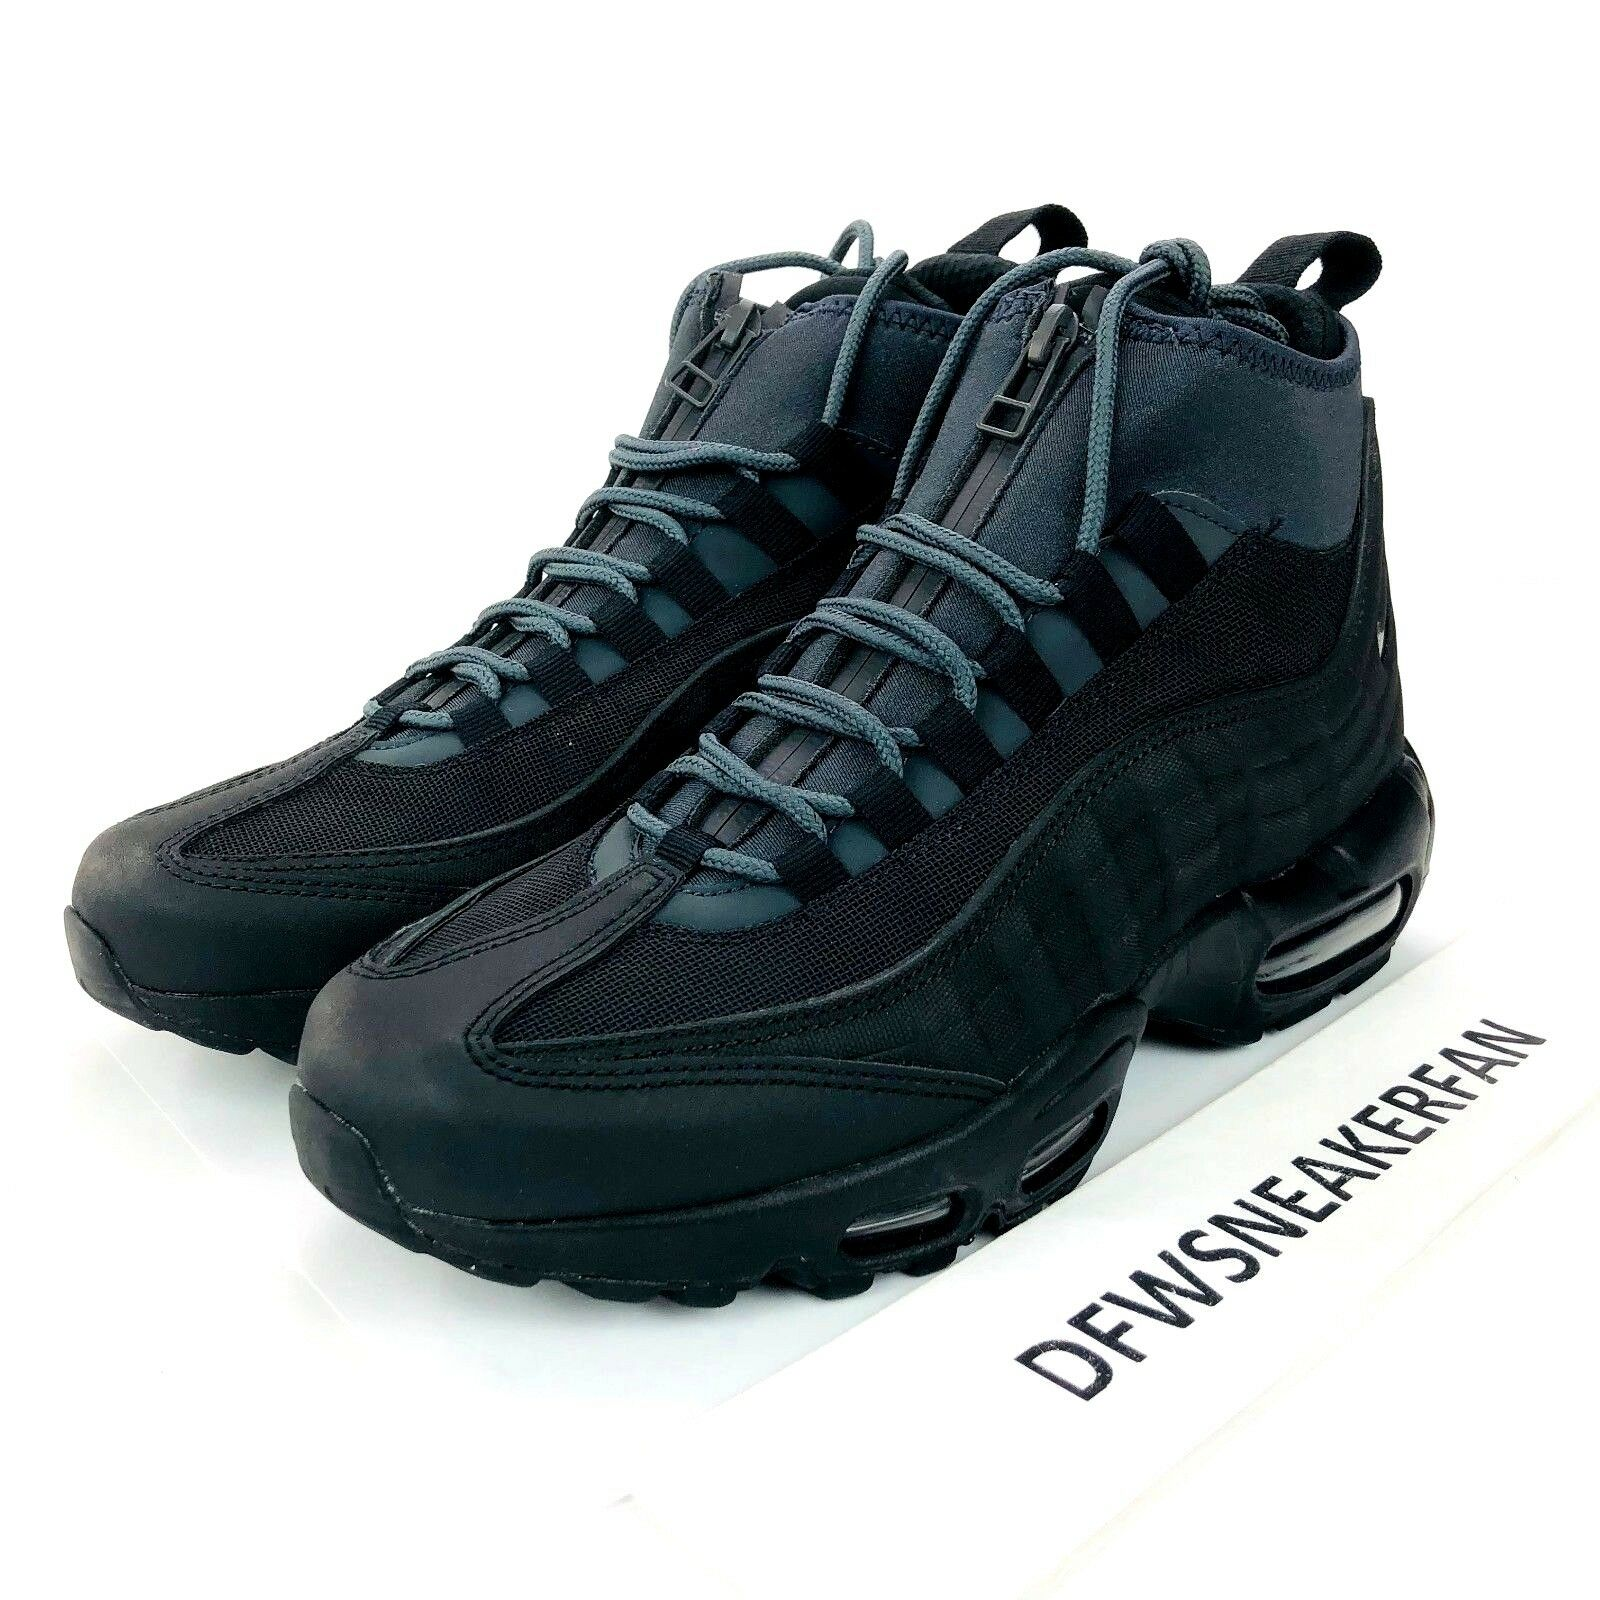 Nike Air Max 95 Sneakerboot shoes Men's Size 8 Black Anthracite 806809 001 New